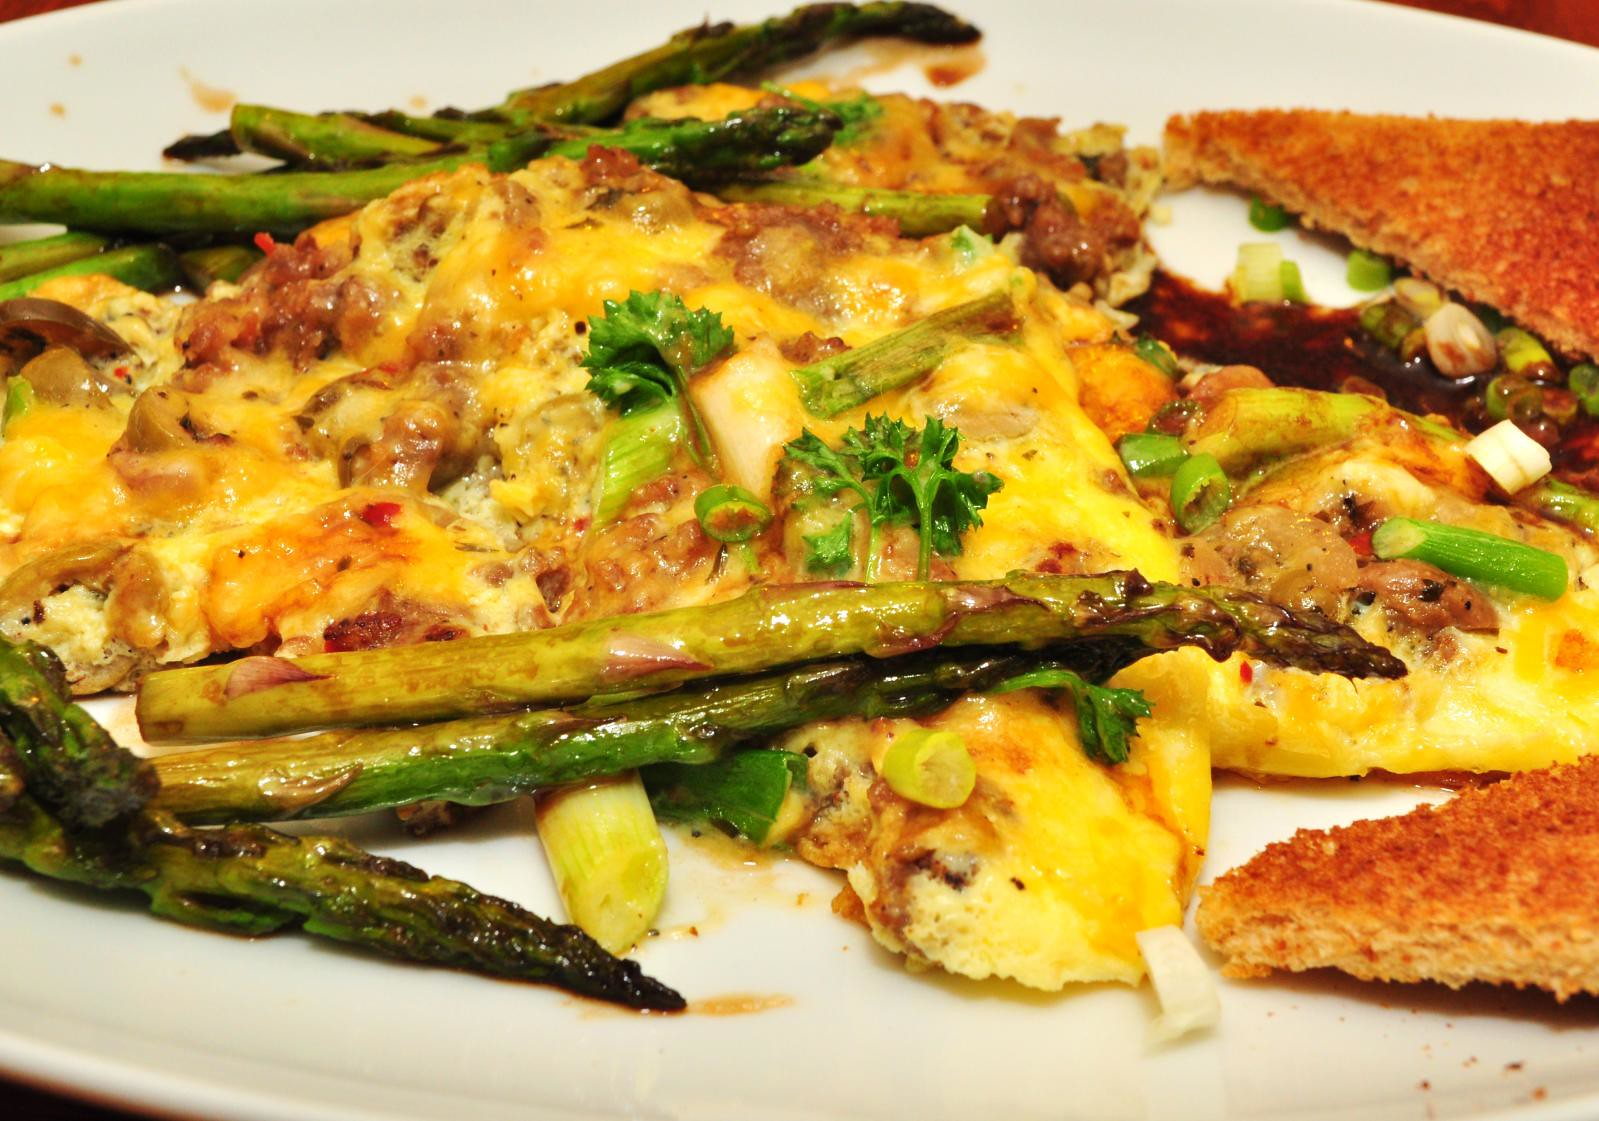 Asparagus and Mushroom Omelet - photo by jeffreyw under CC BY 2.0